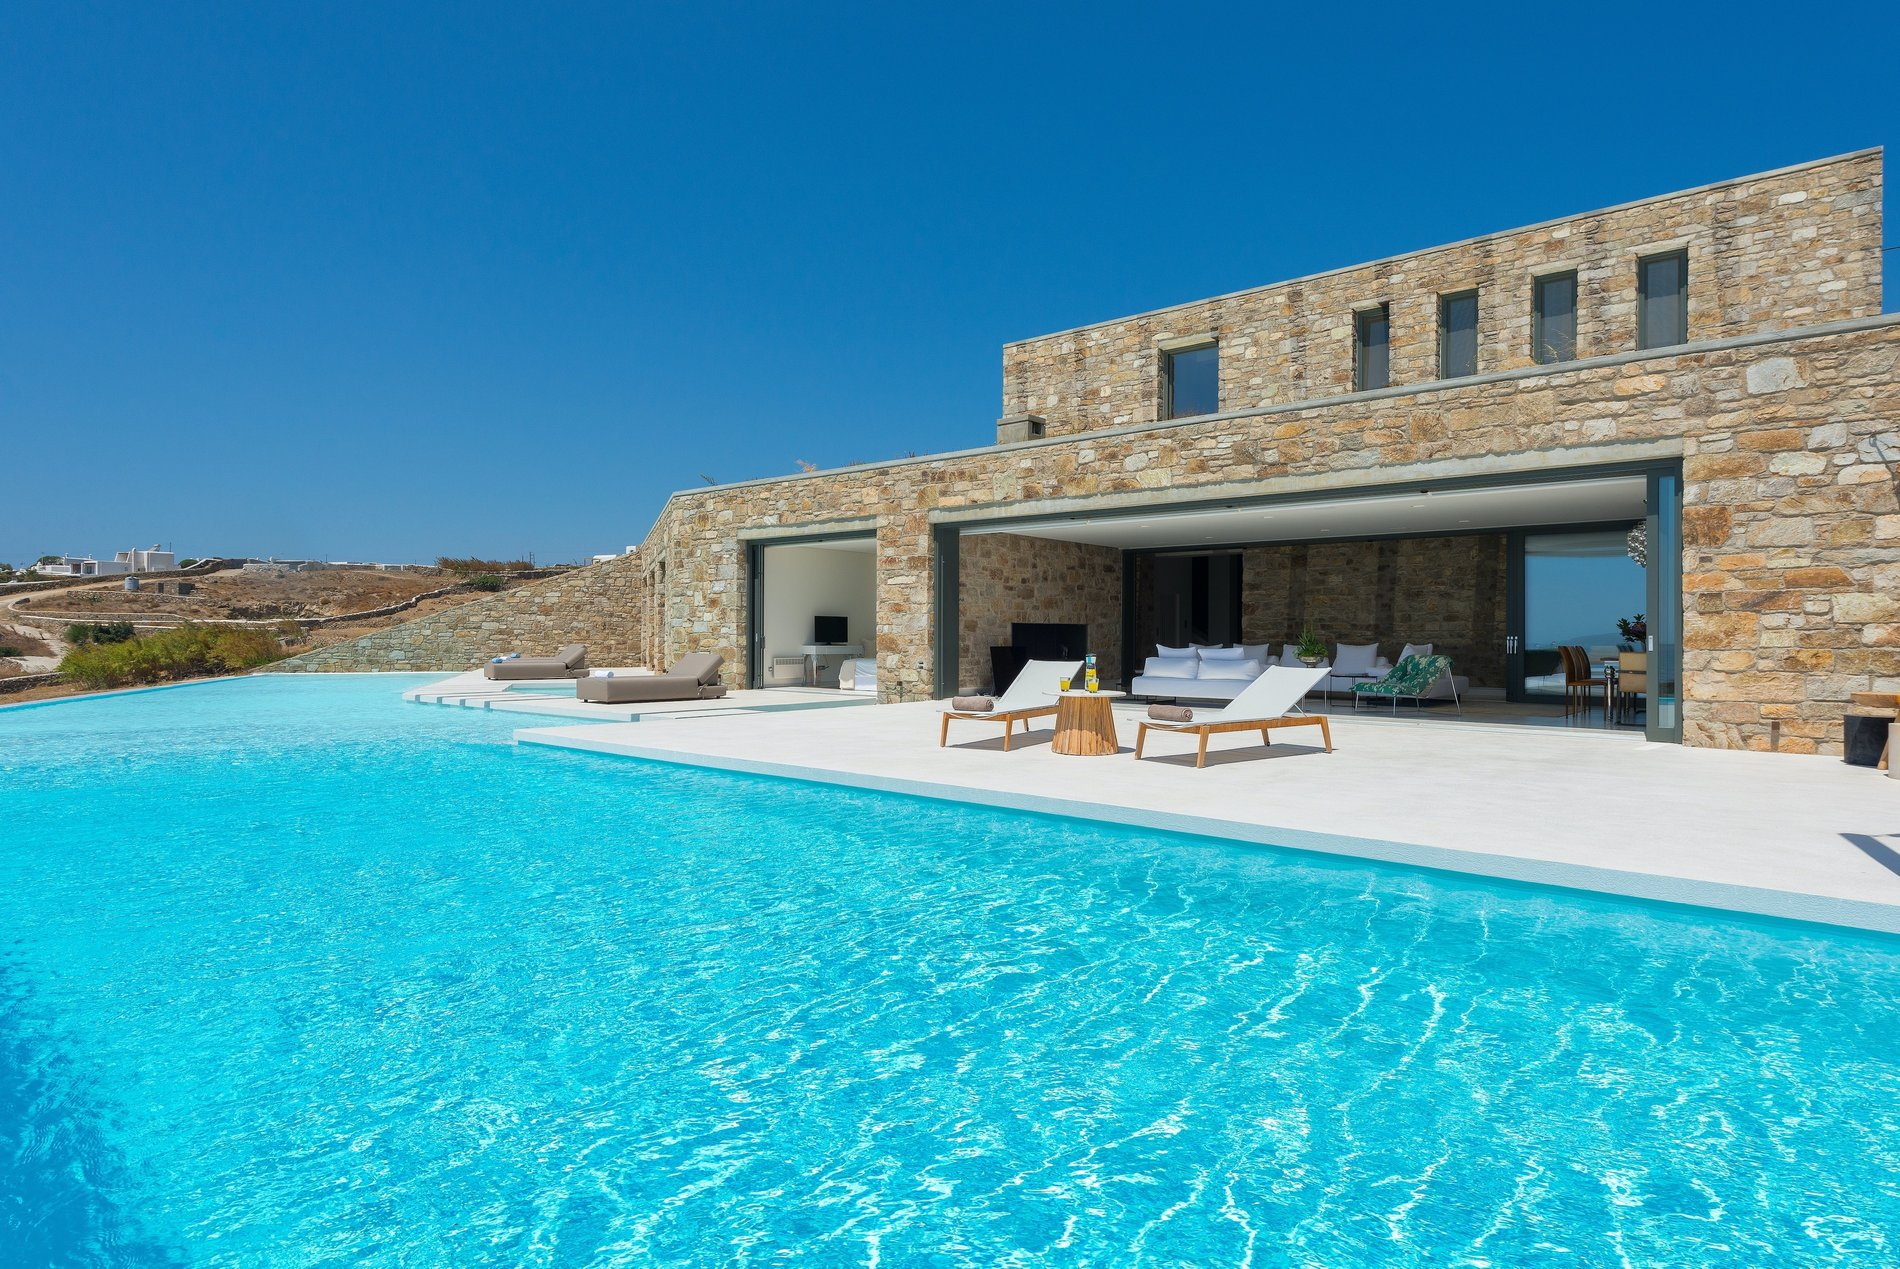 View from the huge infinity pool of this beautiful Modern home in Mykonos, Greece.